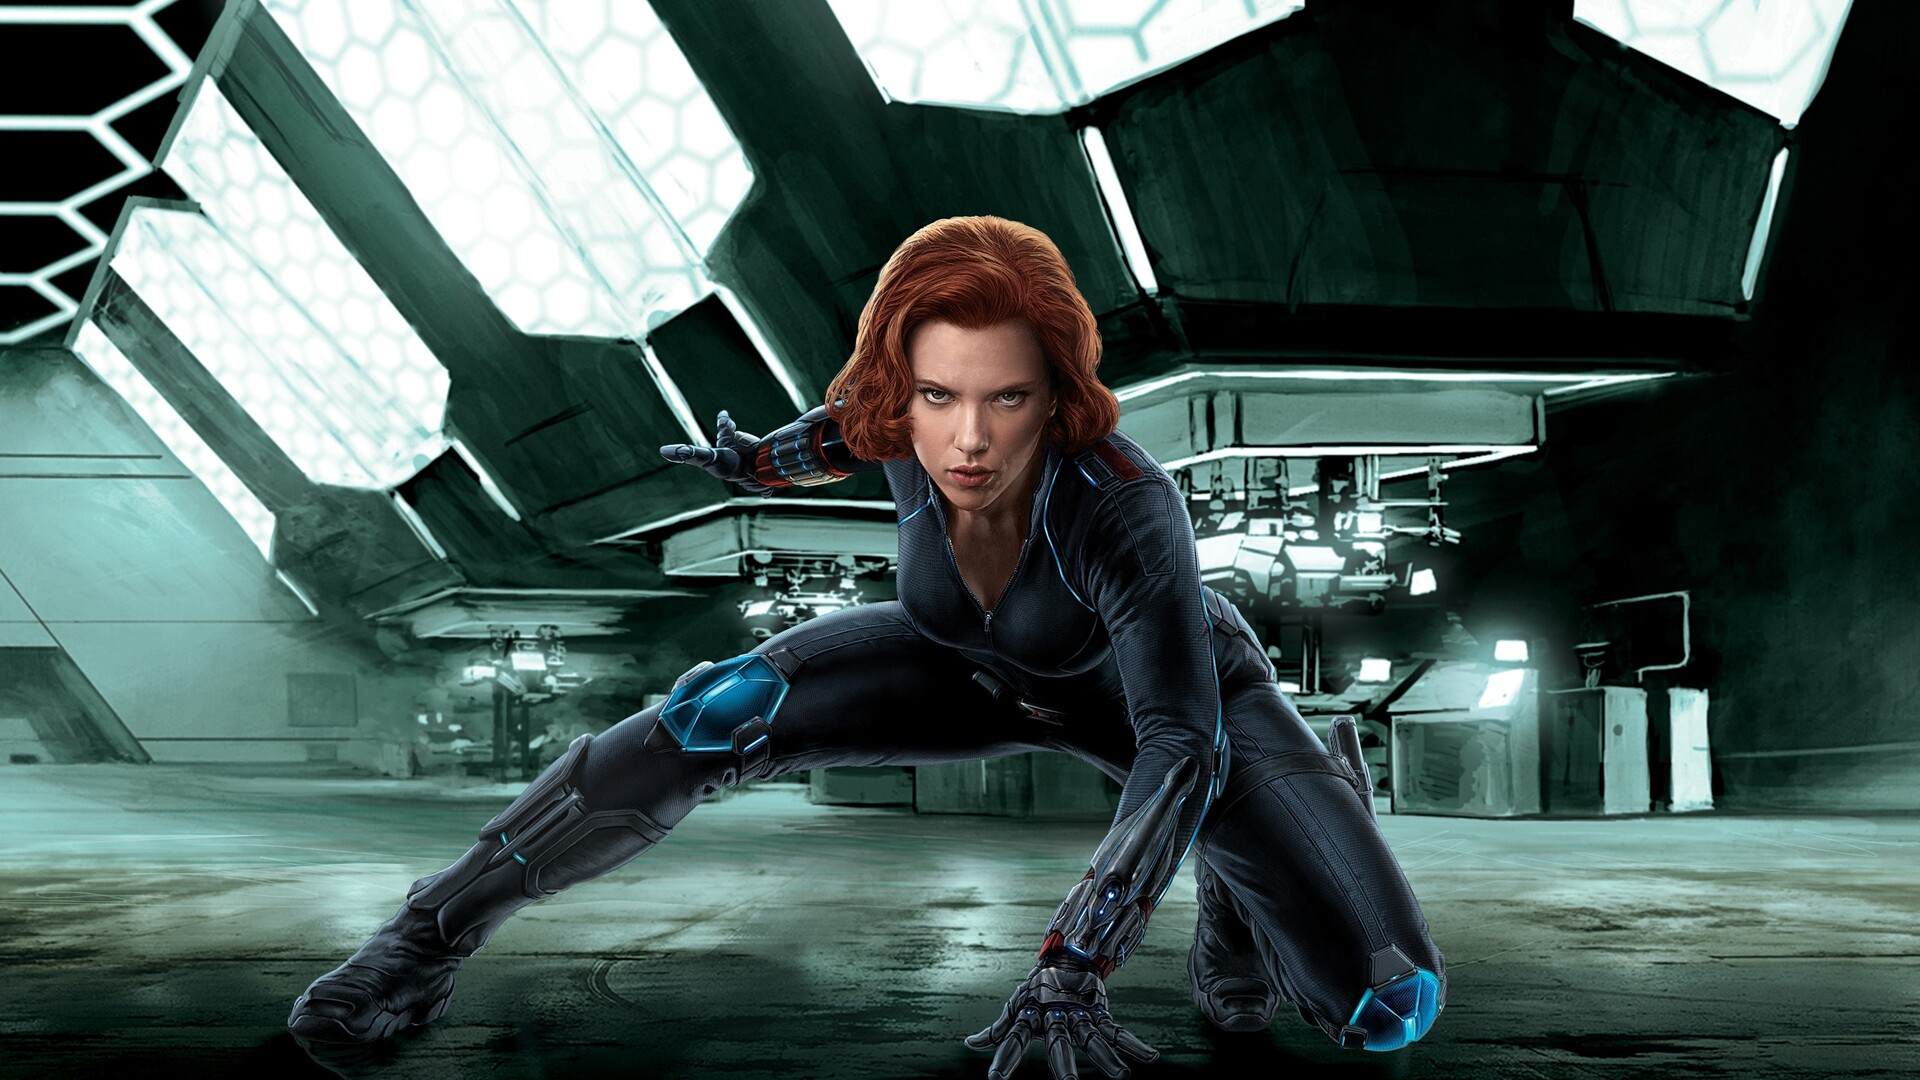 1920x1080 Black Widow Laptop Full Hd 1080p Hd 4k Wallpapers Images